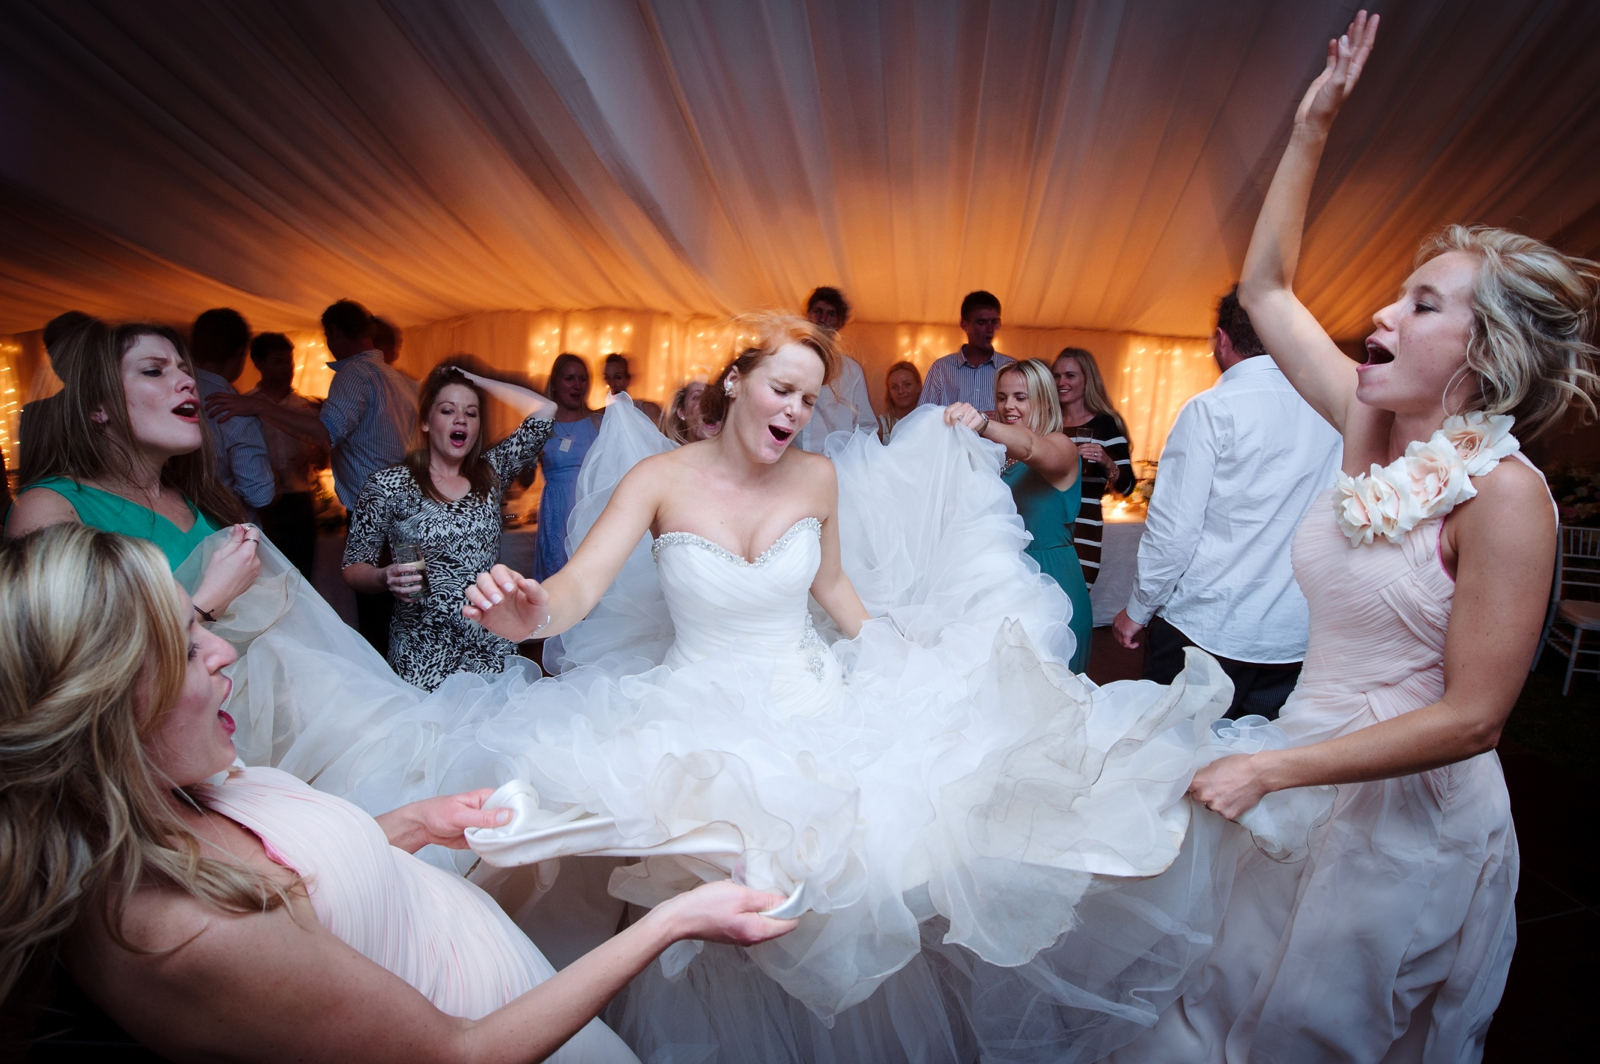 Bride dances in massive dress